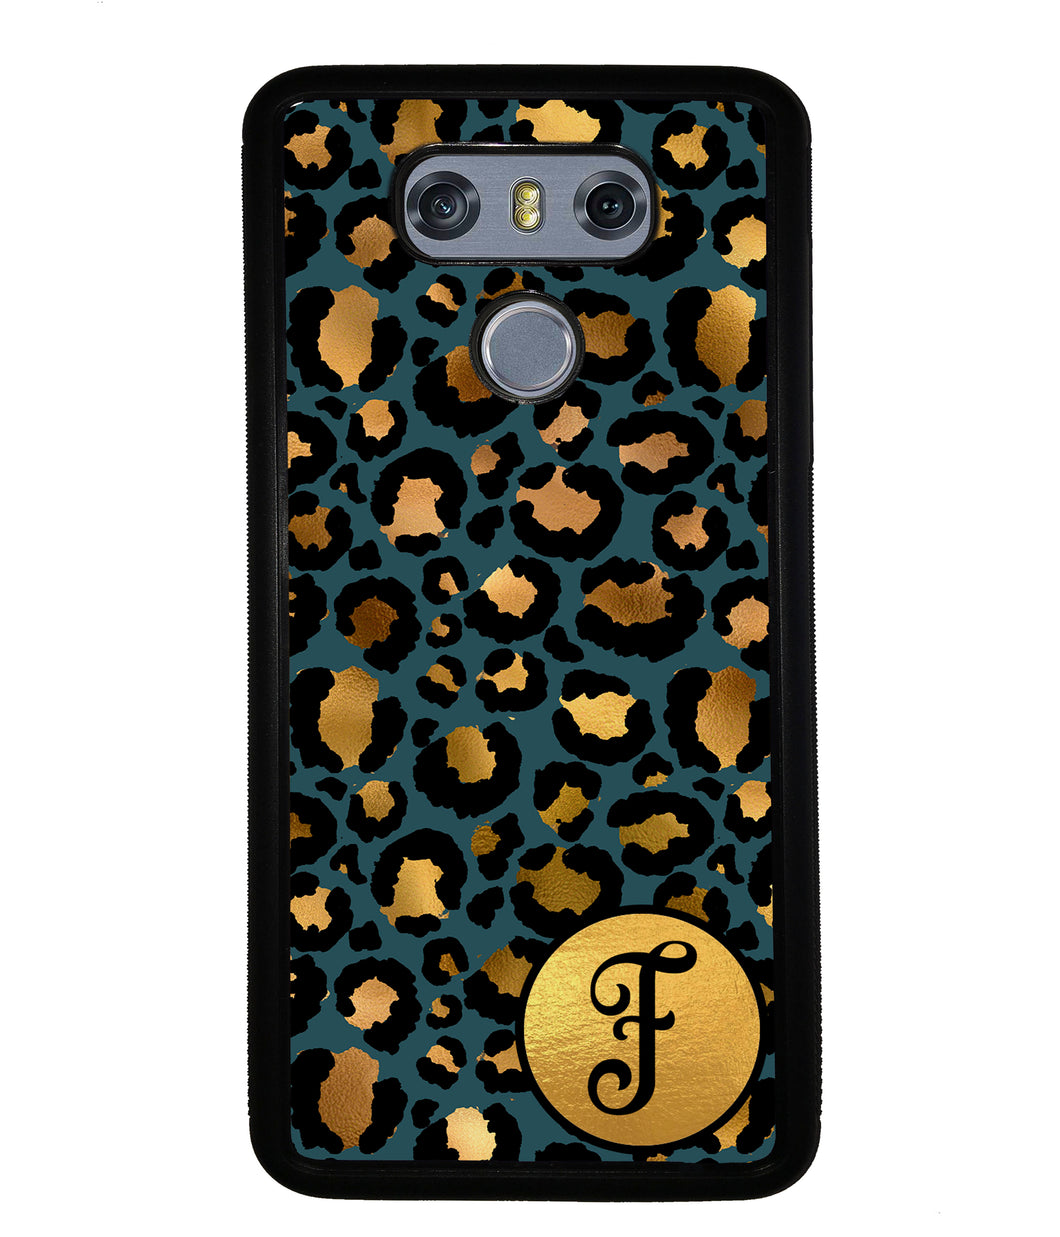 Gold Foil Leopard Skin Personalized | LG Phone Case